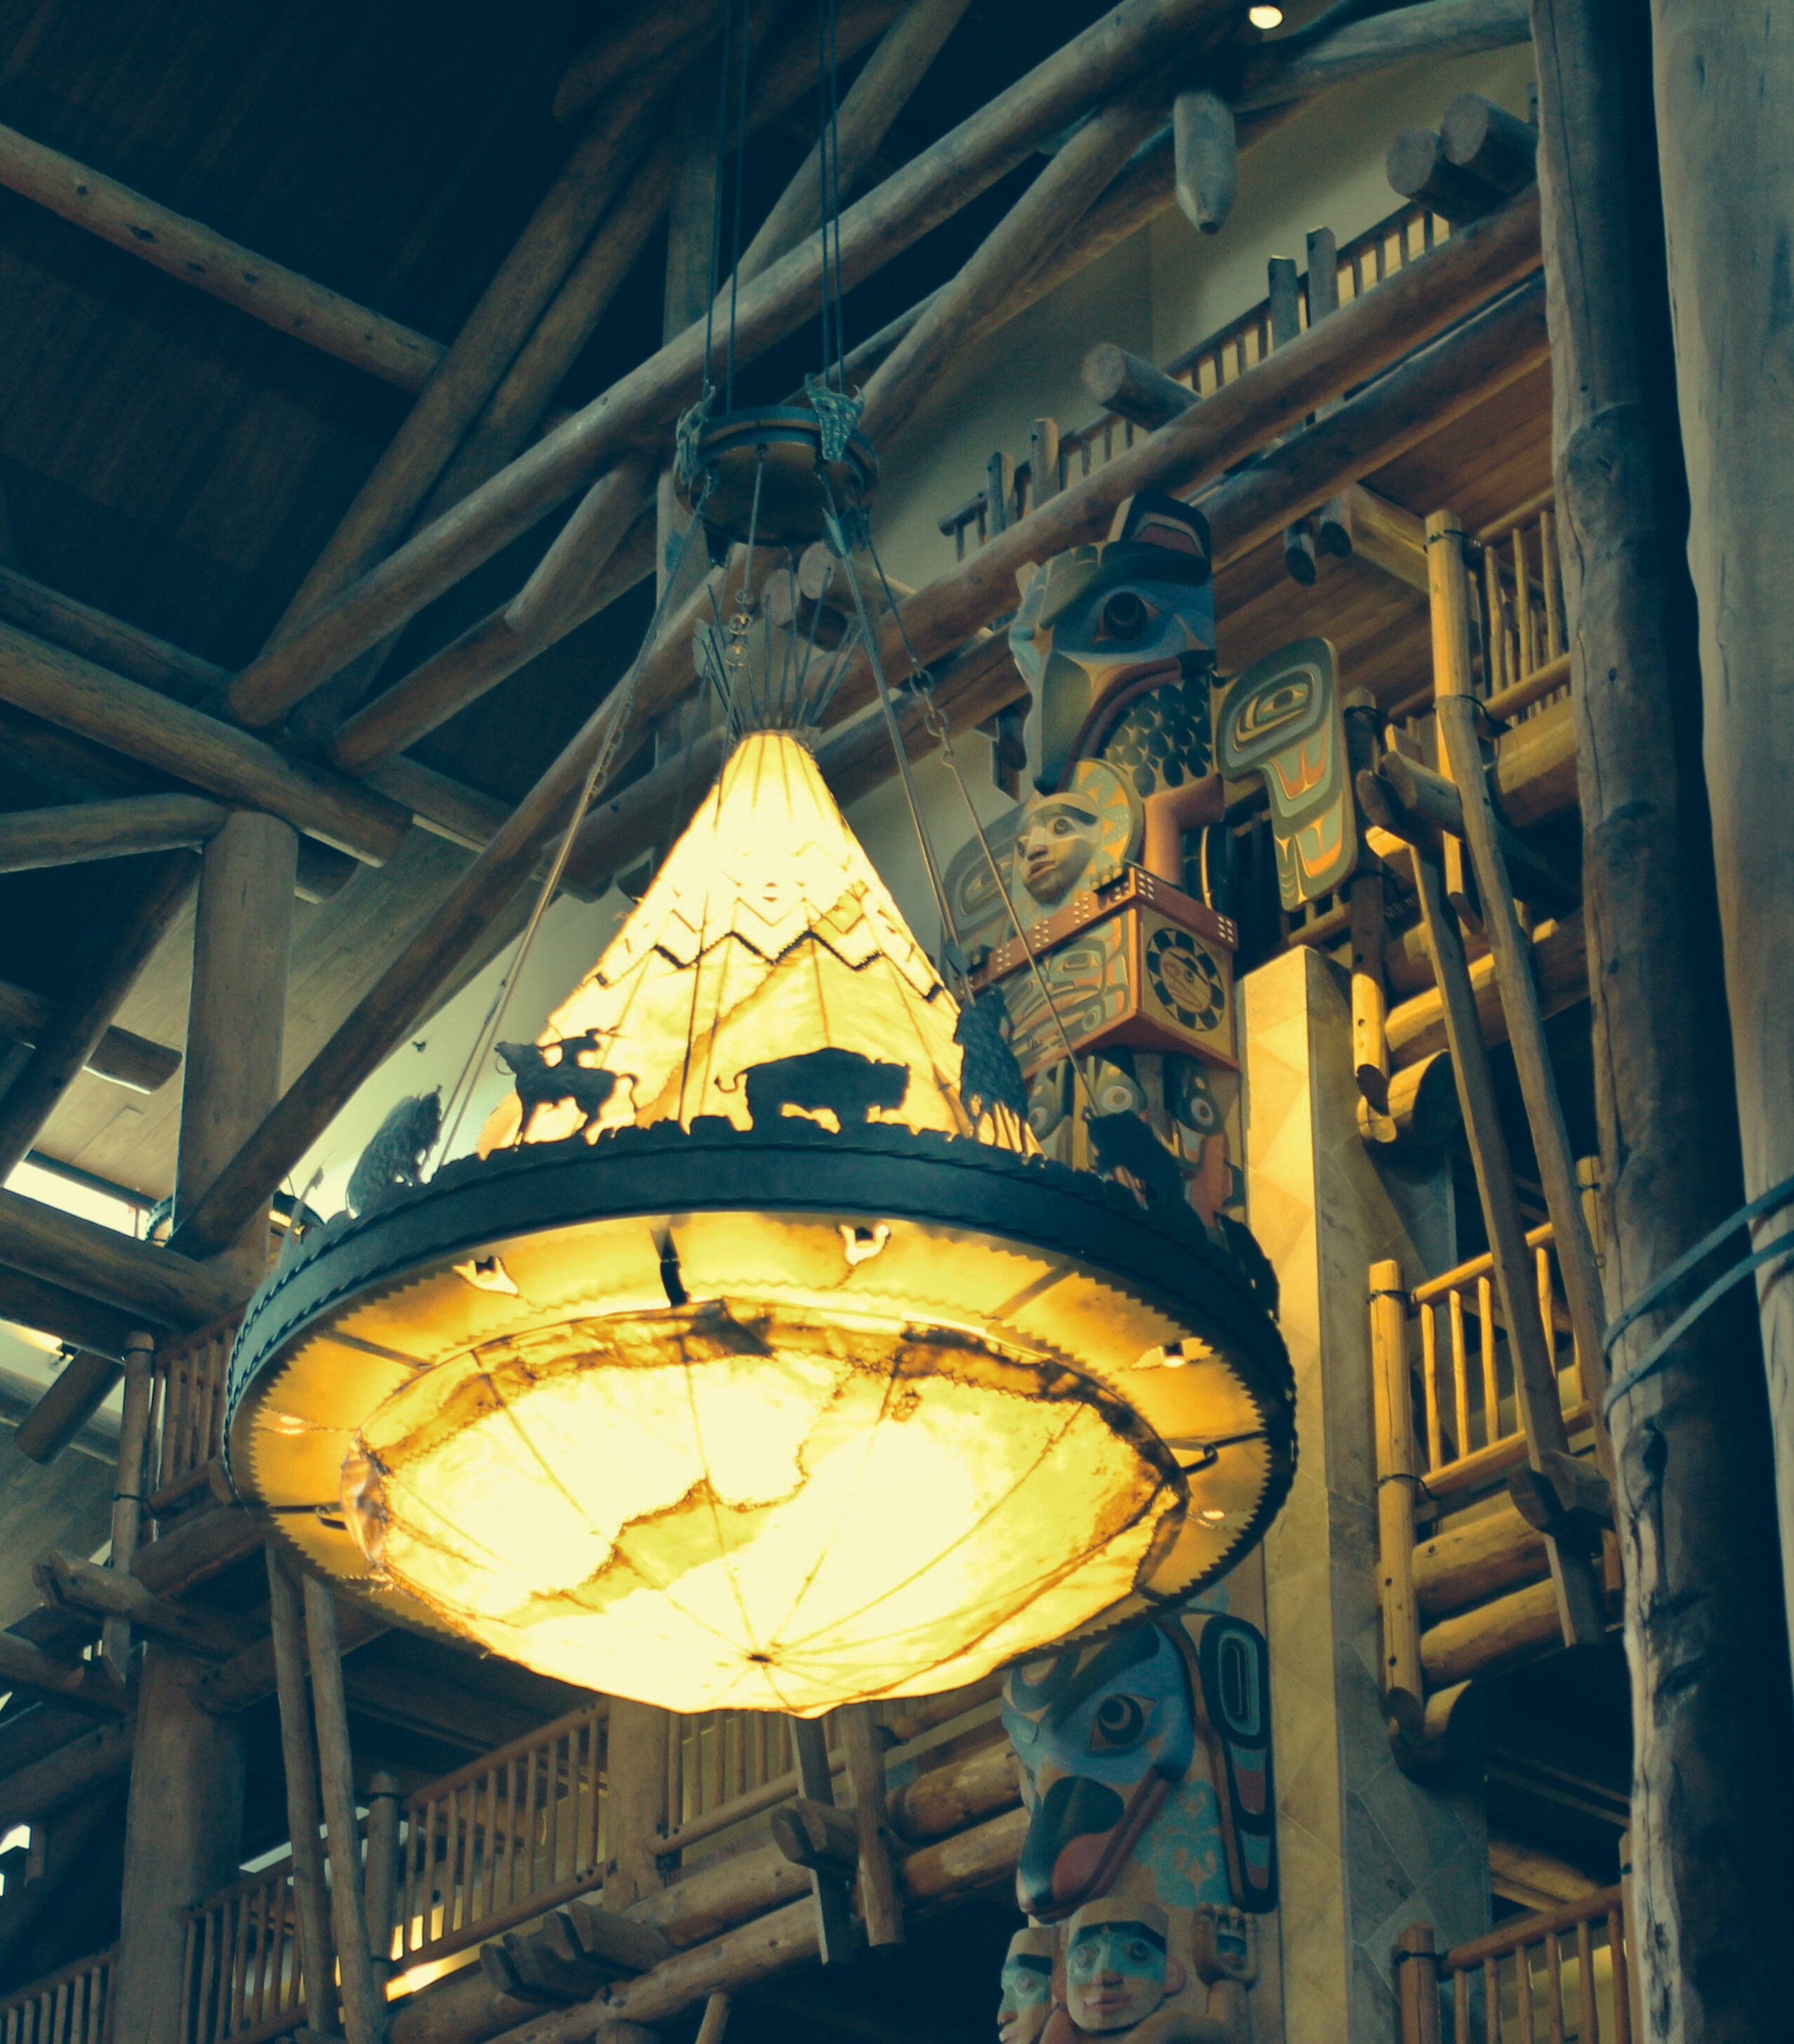 """Disney's Wilderness Lodge seemed the most """"theme appropriate"""" for a pre-Christmas trip!"""